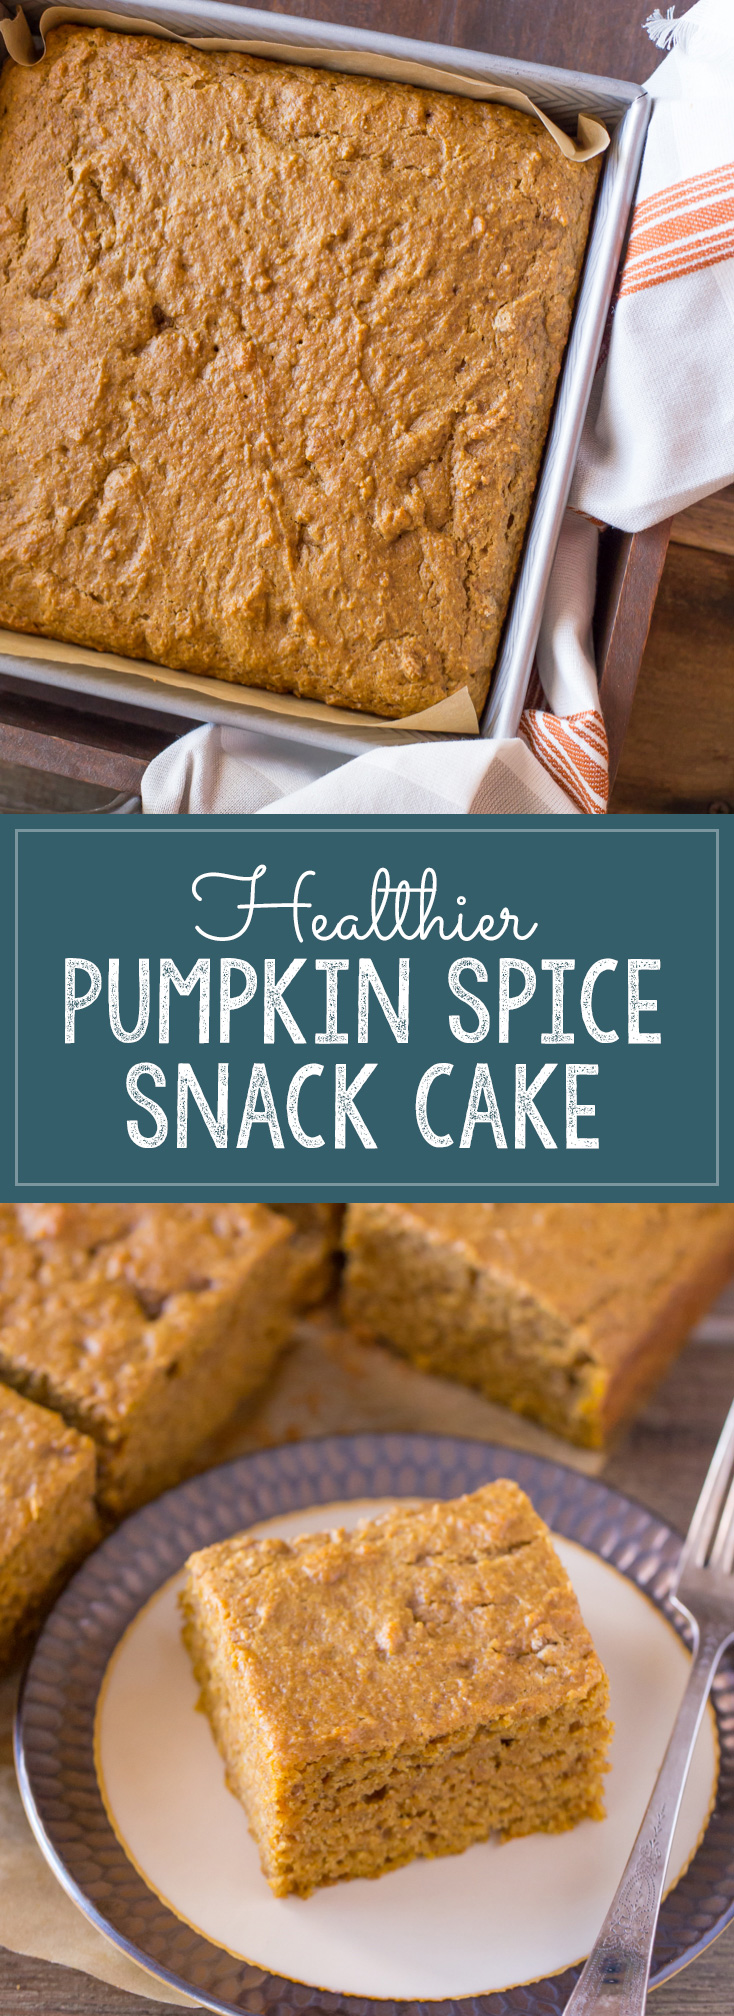 Healthier Pumpkin Spice Snack Cake Lovely Little Kitchen